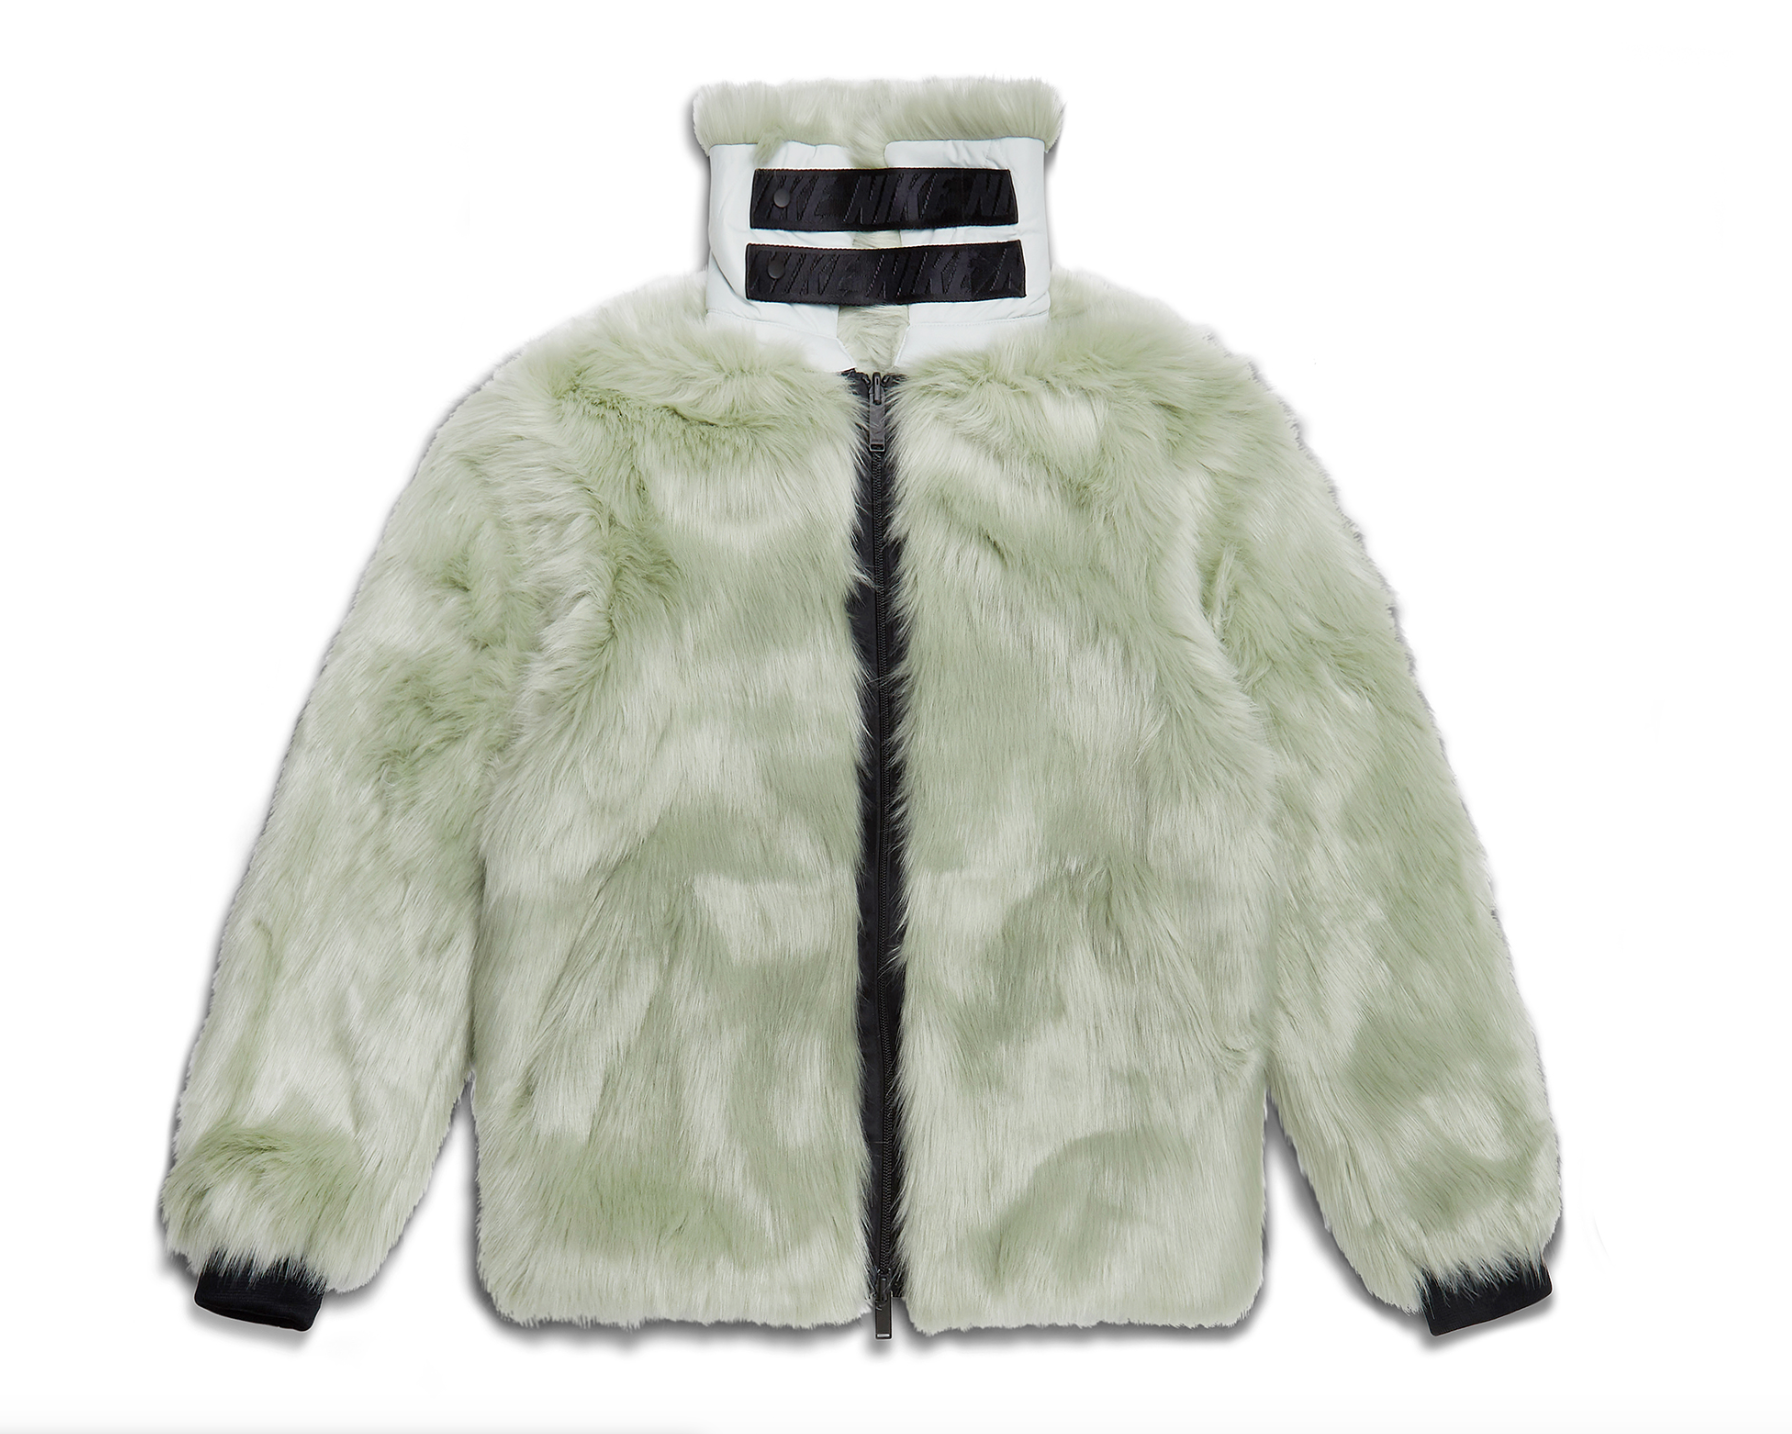 Nike x Ambush Women's Reversible Faux Fur Coat Jade Horizon/Black